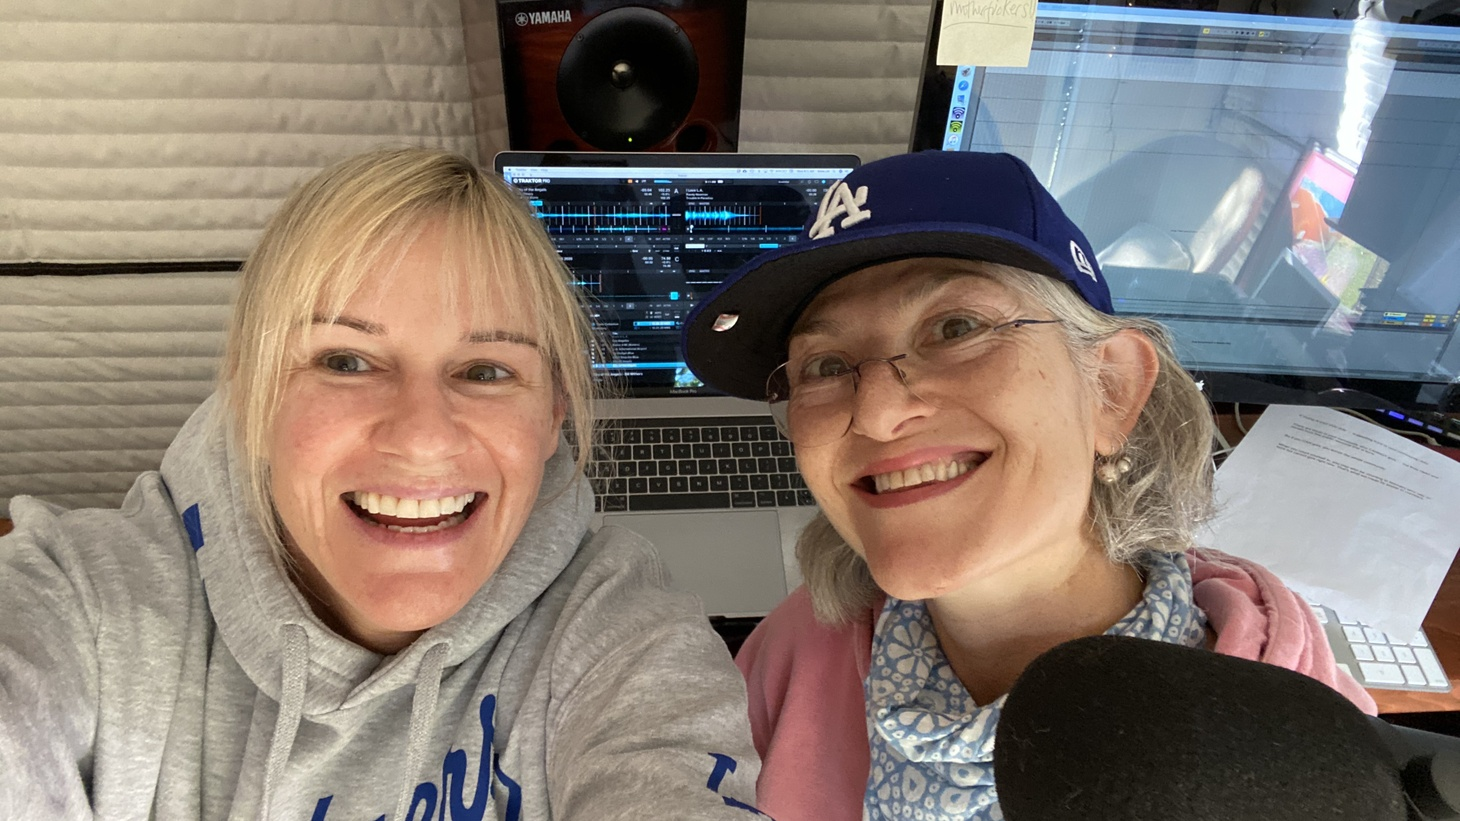 Anne Litt and Ariana Morgenstern celebrate the Dodgers championship win in the Morning Becomes Eclectic studio in Litt's house.